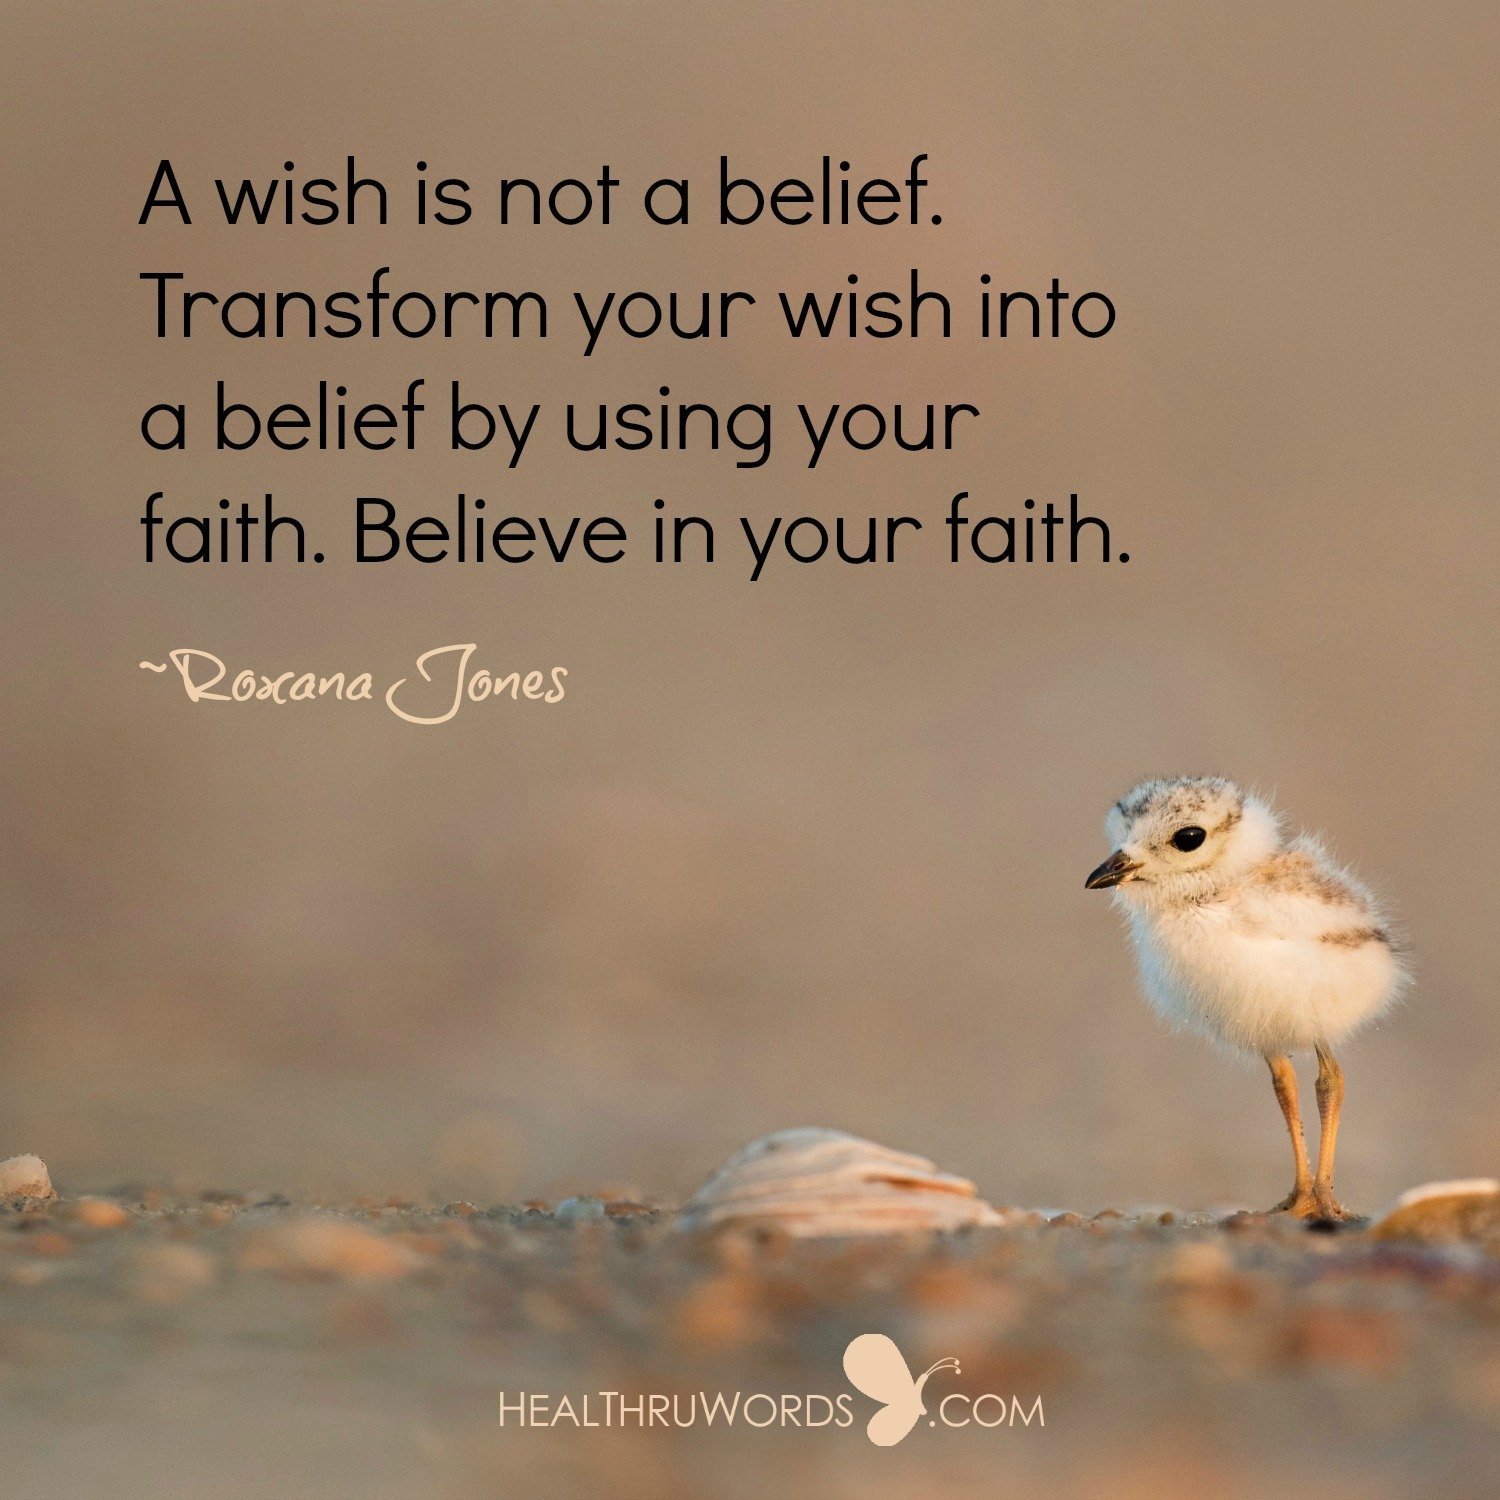 Inspirational Image: From Wishes to Beliefs